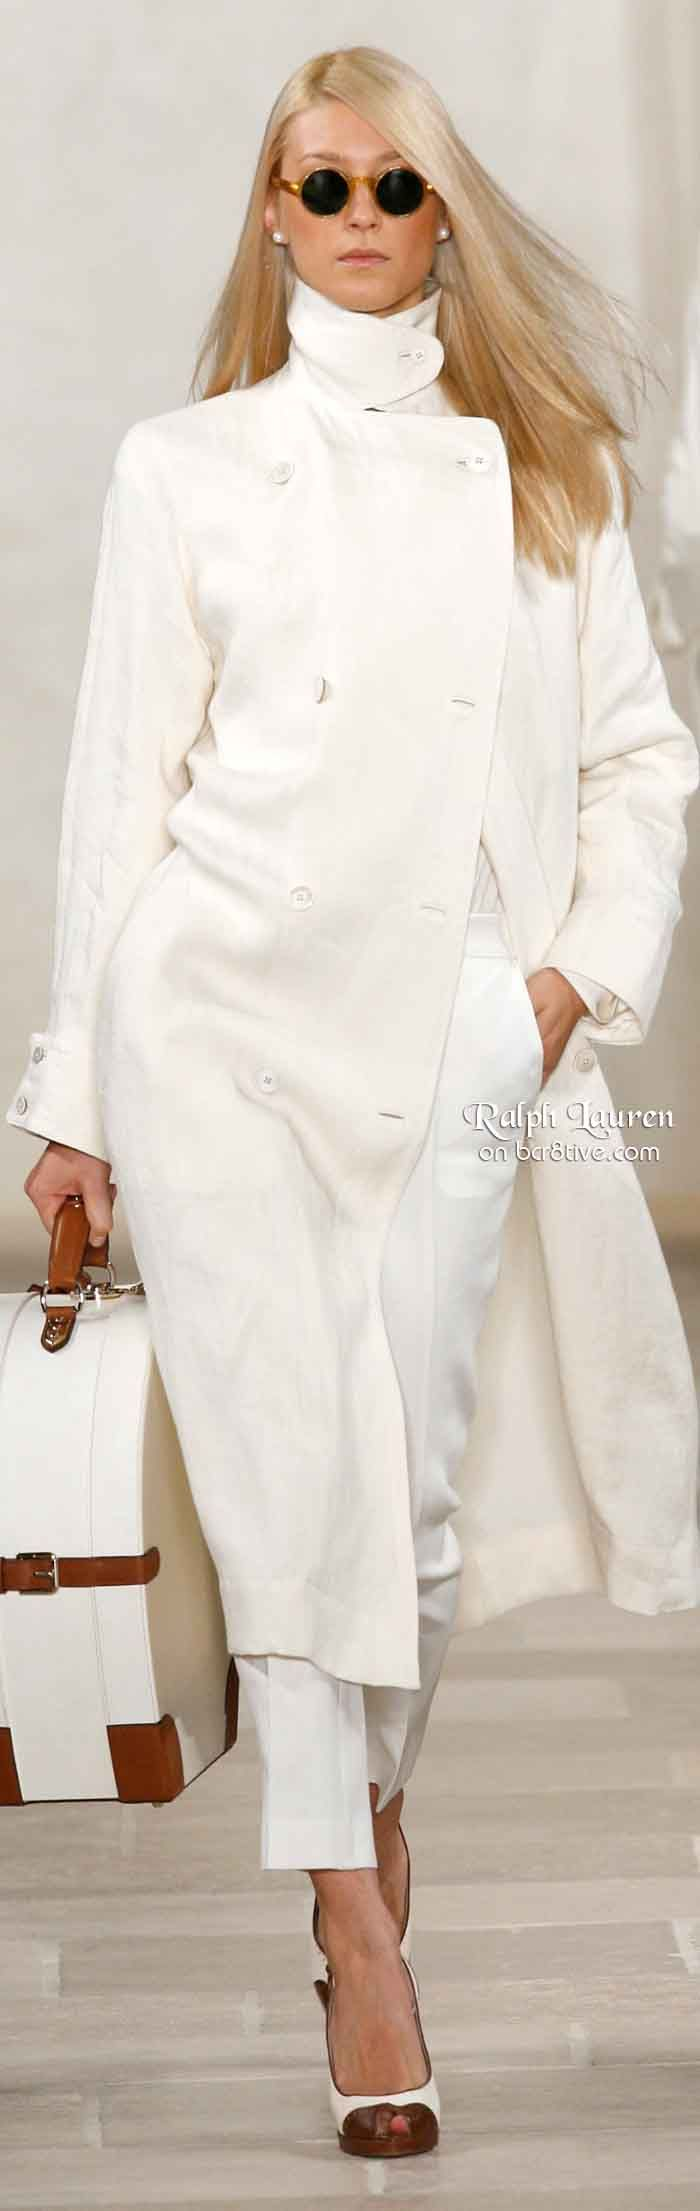 Ralph Lauren Spring Summer 2009...this is Spring...but I loved it!